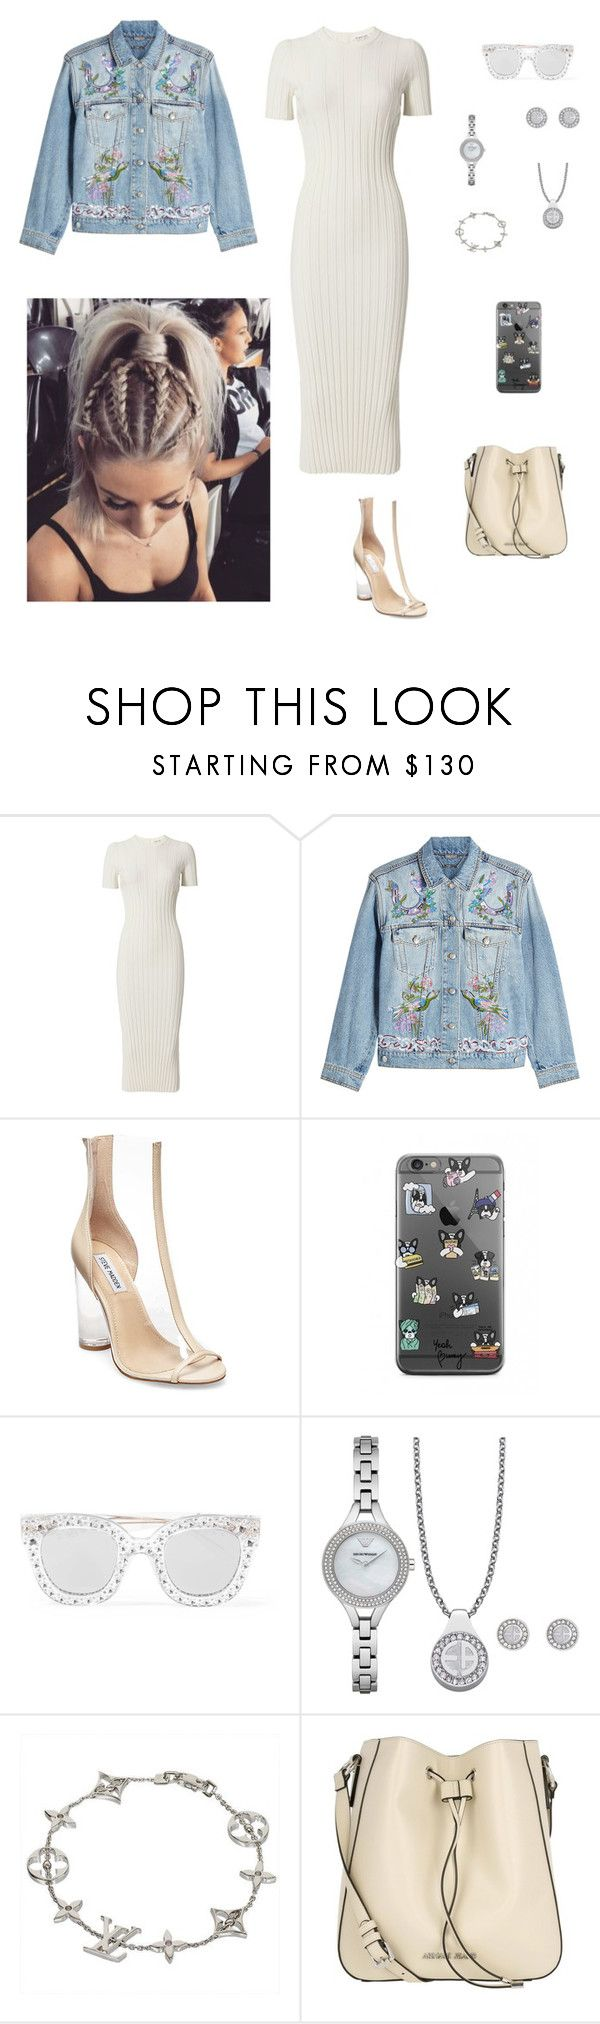 """Без названия #2554"" by gvarjusha ❤ liked on Polyvore featuring Helmut Lang, Alexander McQueen, Steve Madden, Gucci, Emporio Armani, Louis Vuitton and Armani Jeans"